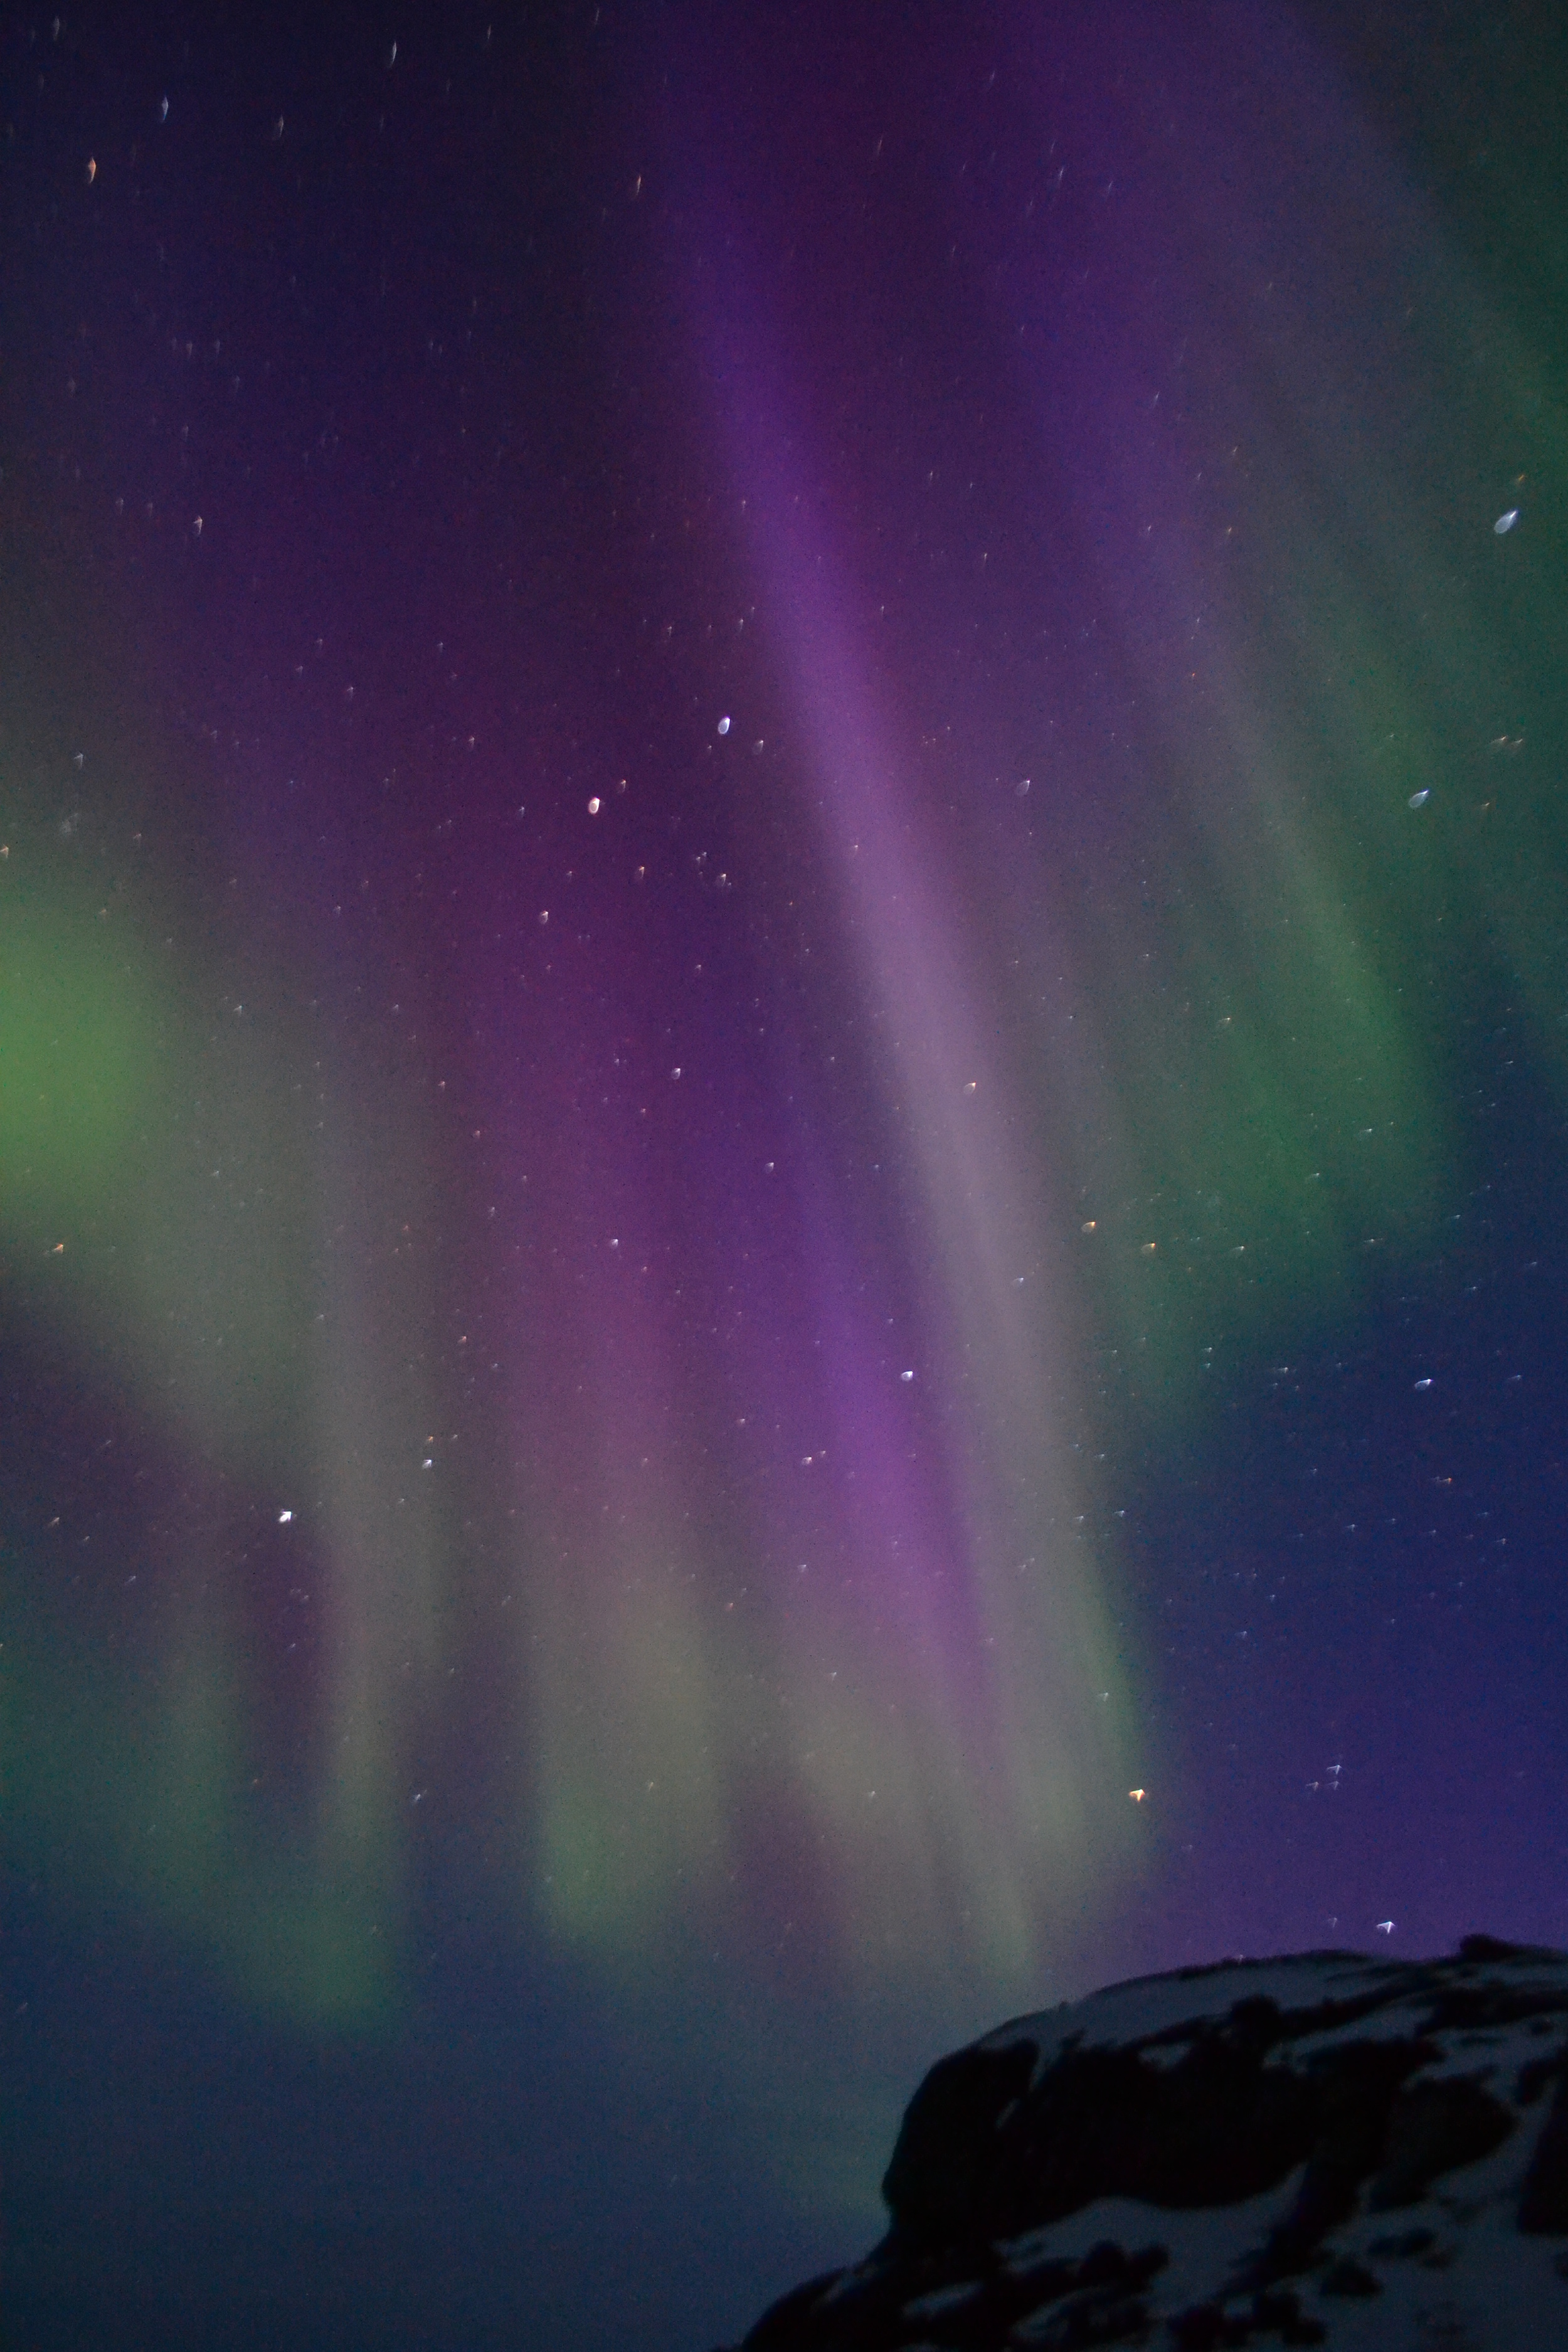 An aurora is seen over Greenland on April 2, 2011. Two NASA sounding rockets will launch into a particular type of aurora called a cusp aurora this winter to study different processes related to the particle acceleration that causes cusp auroras. The cusp is a region near the North Pole where Earth's magnetic field is directly connected to the solar wind, allowing daytime auroras to form. - Image credit: NASA/University of Maryland, College Park/Robert Michell